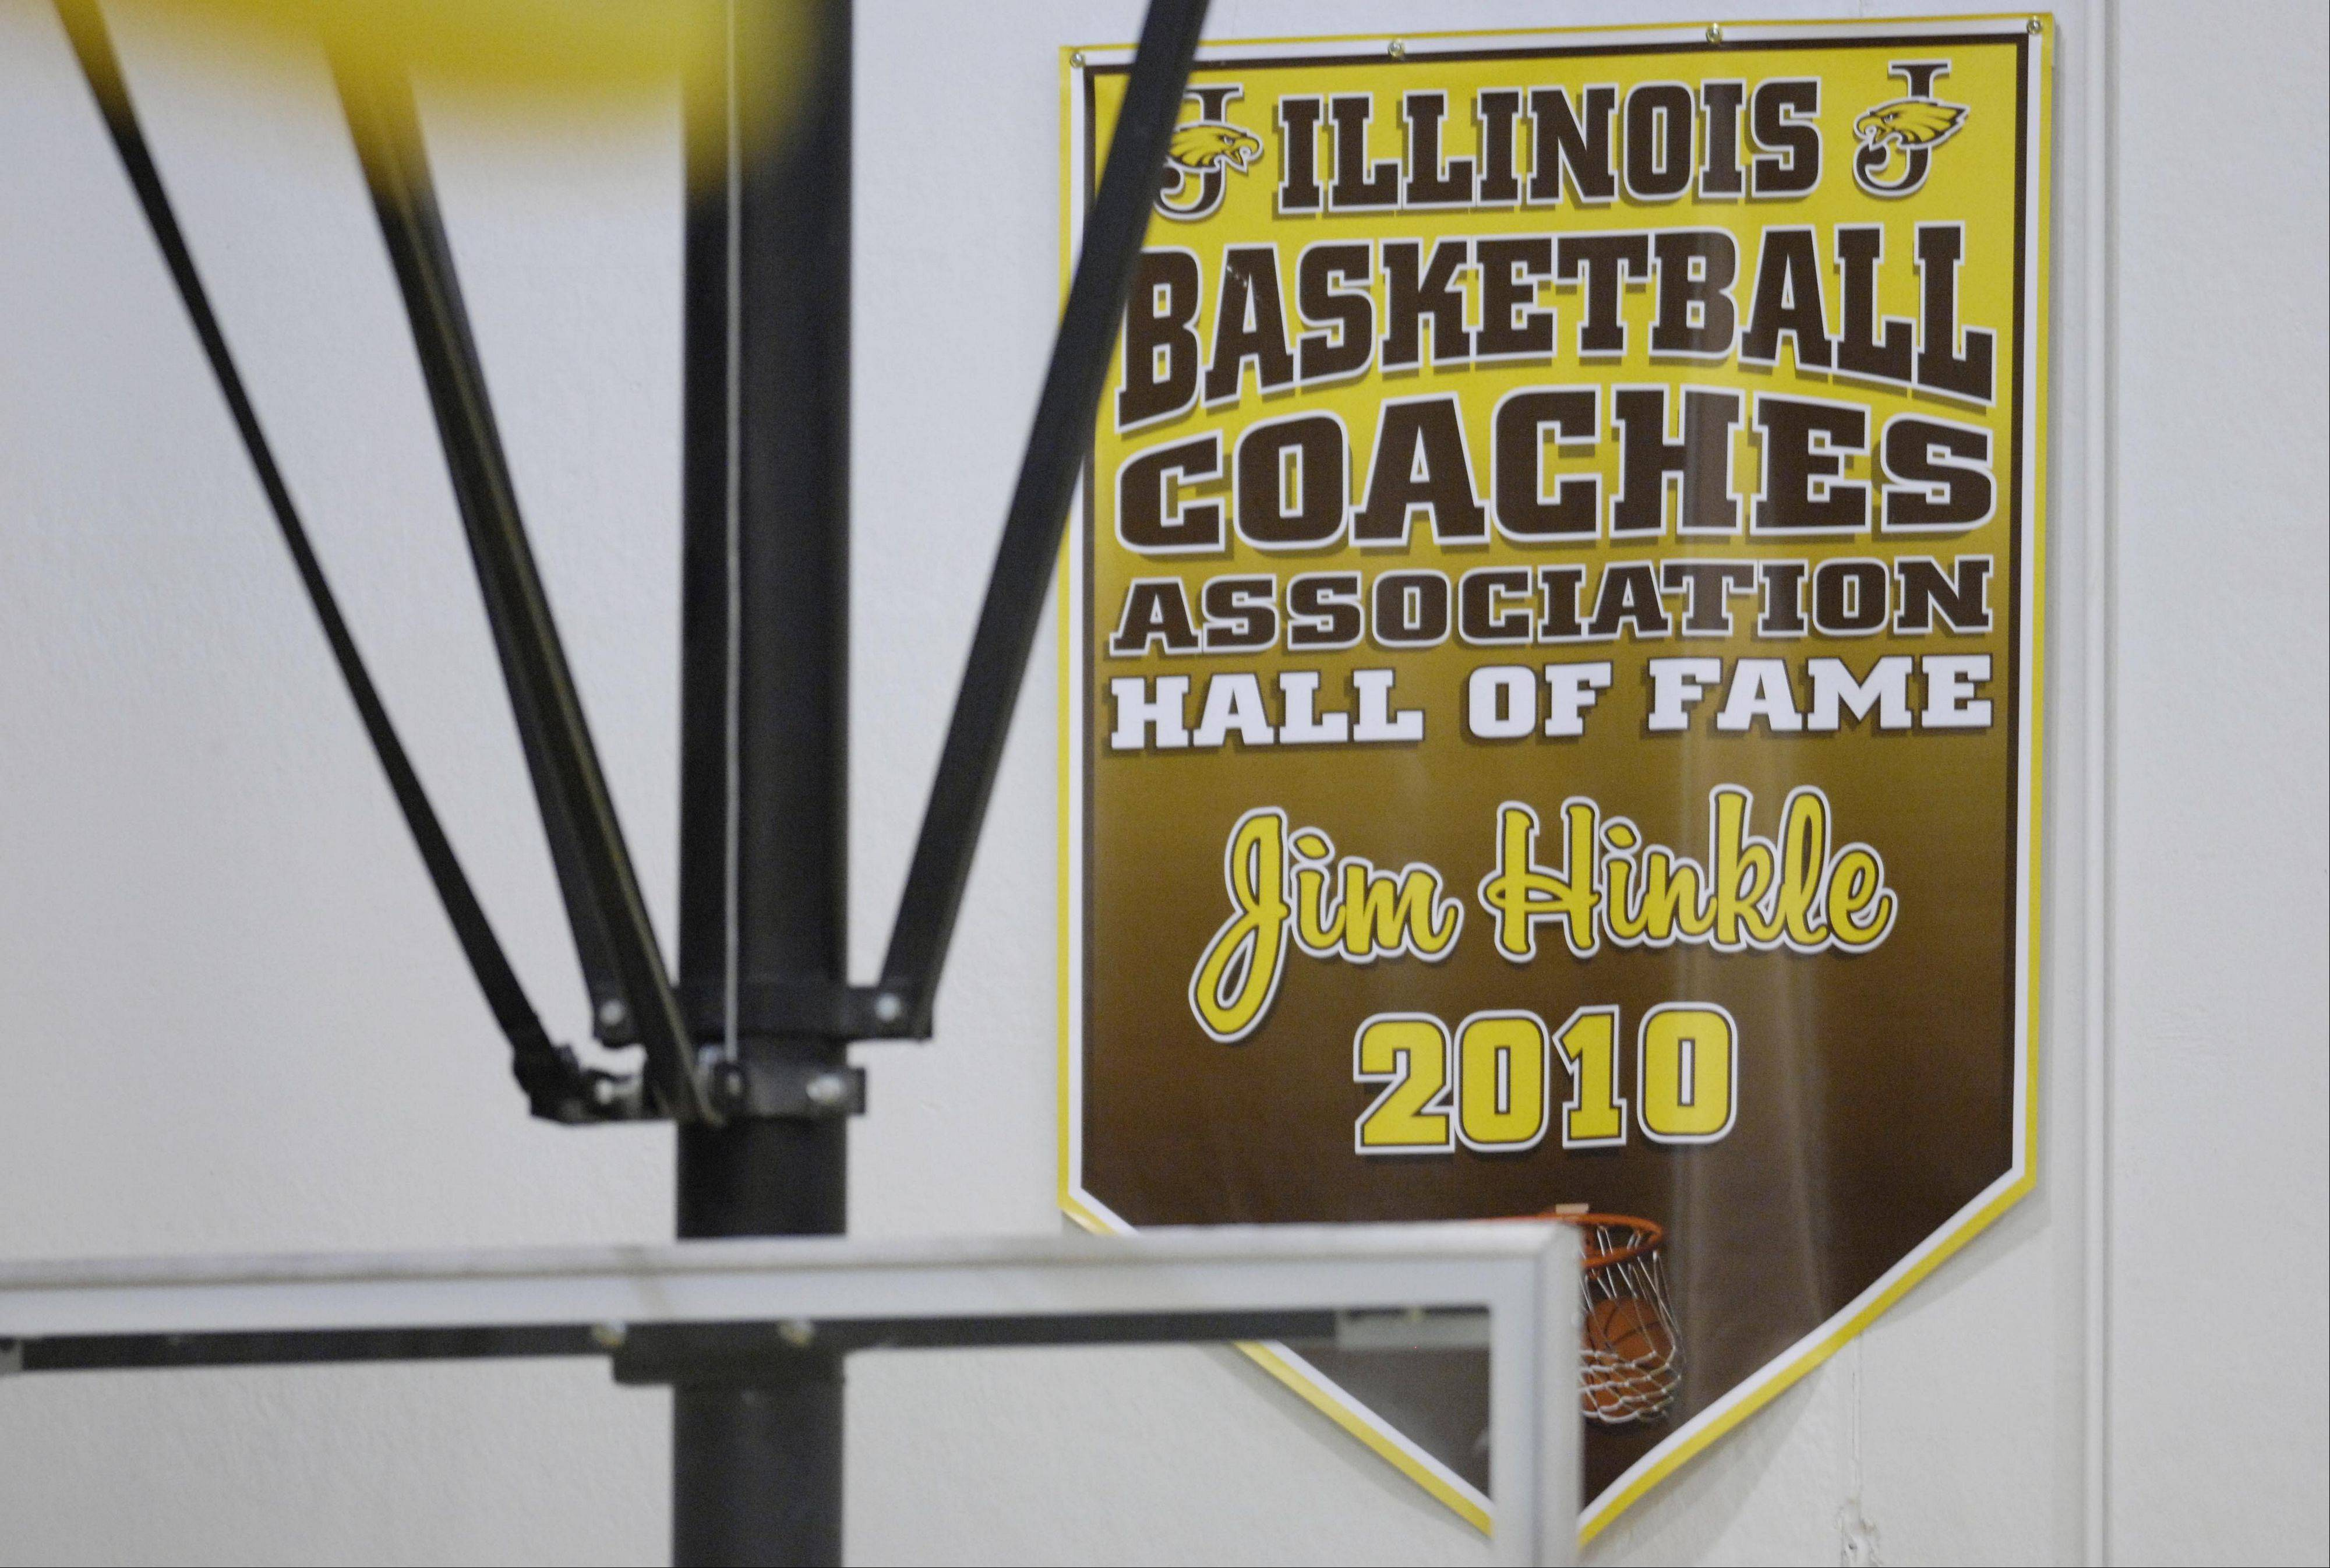 Hinkle has been a boys basketball head coach for 39 seasons and was elected to the Illinois Basketball Coaches Association Hall of Fame.